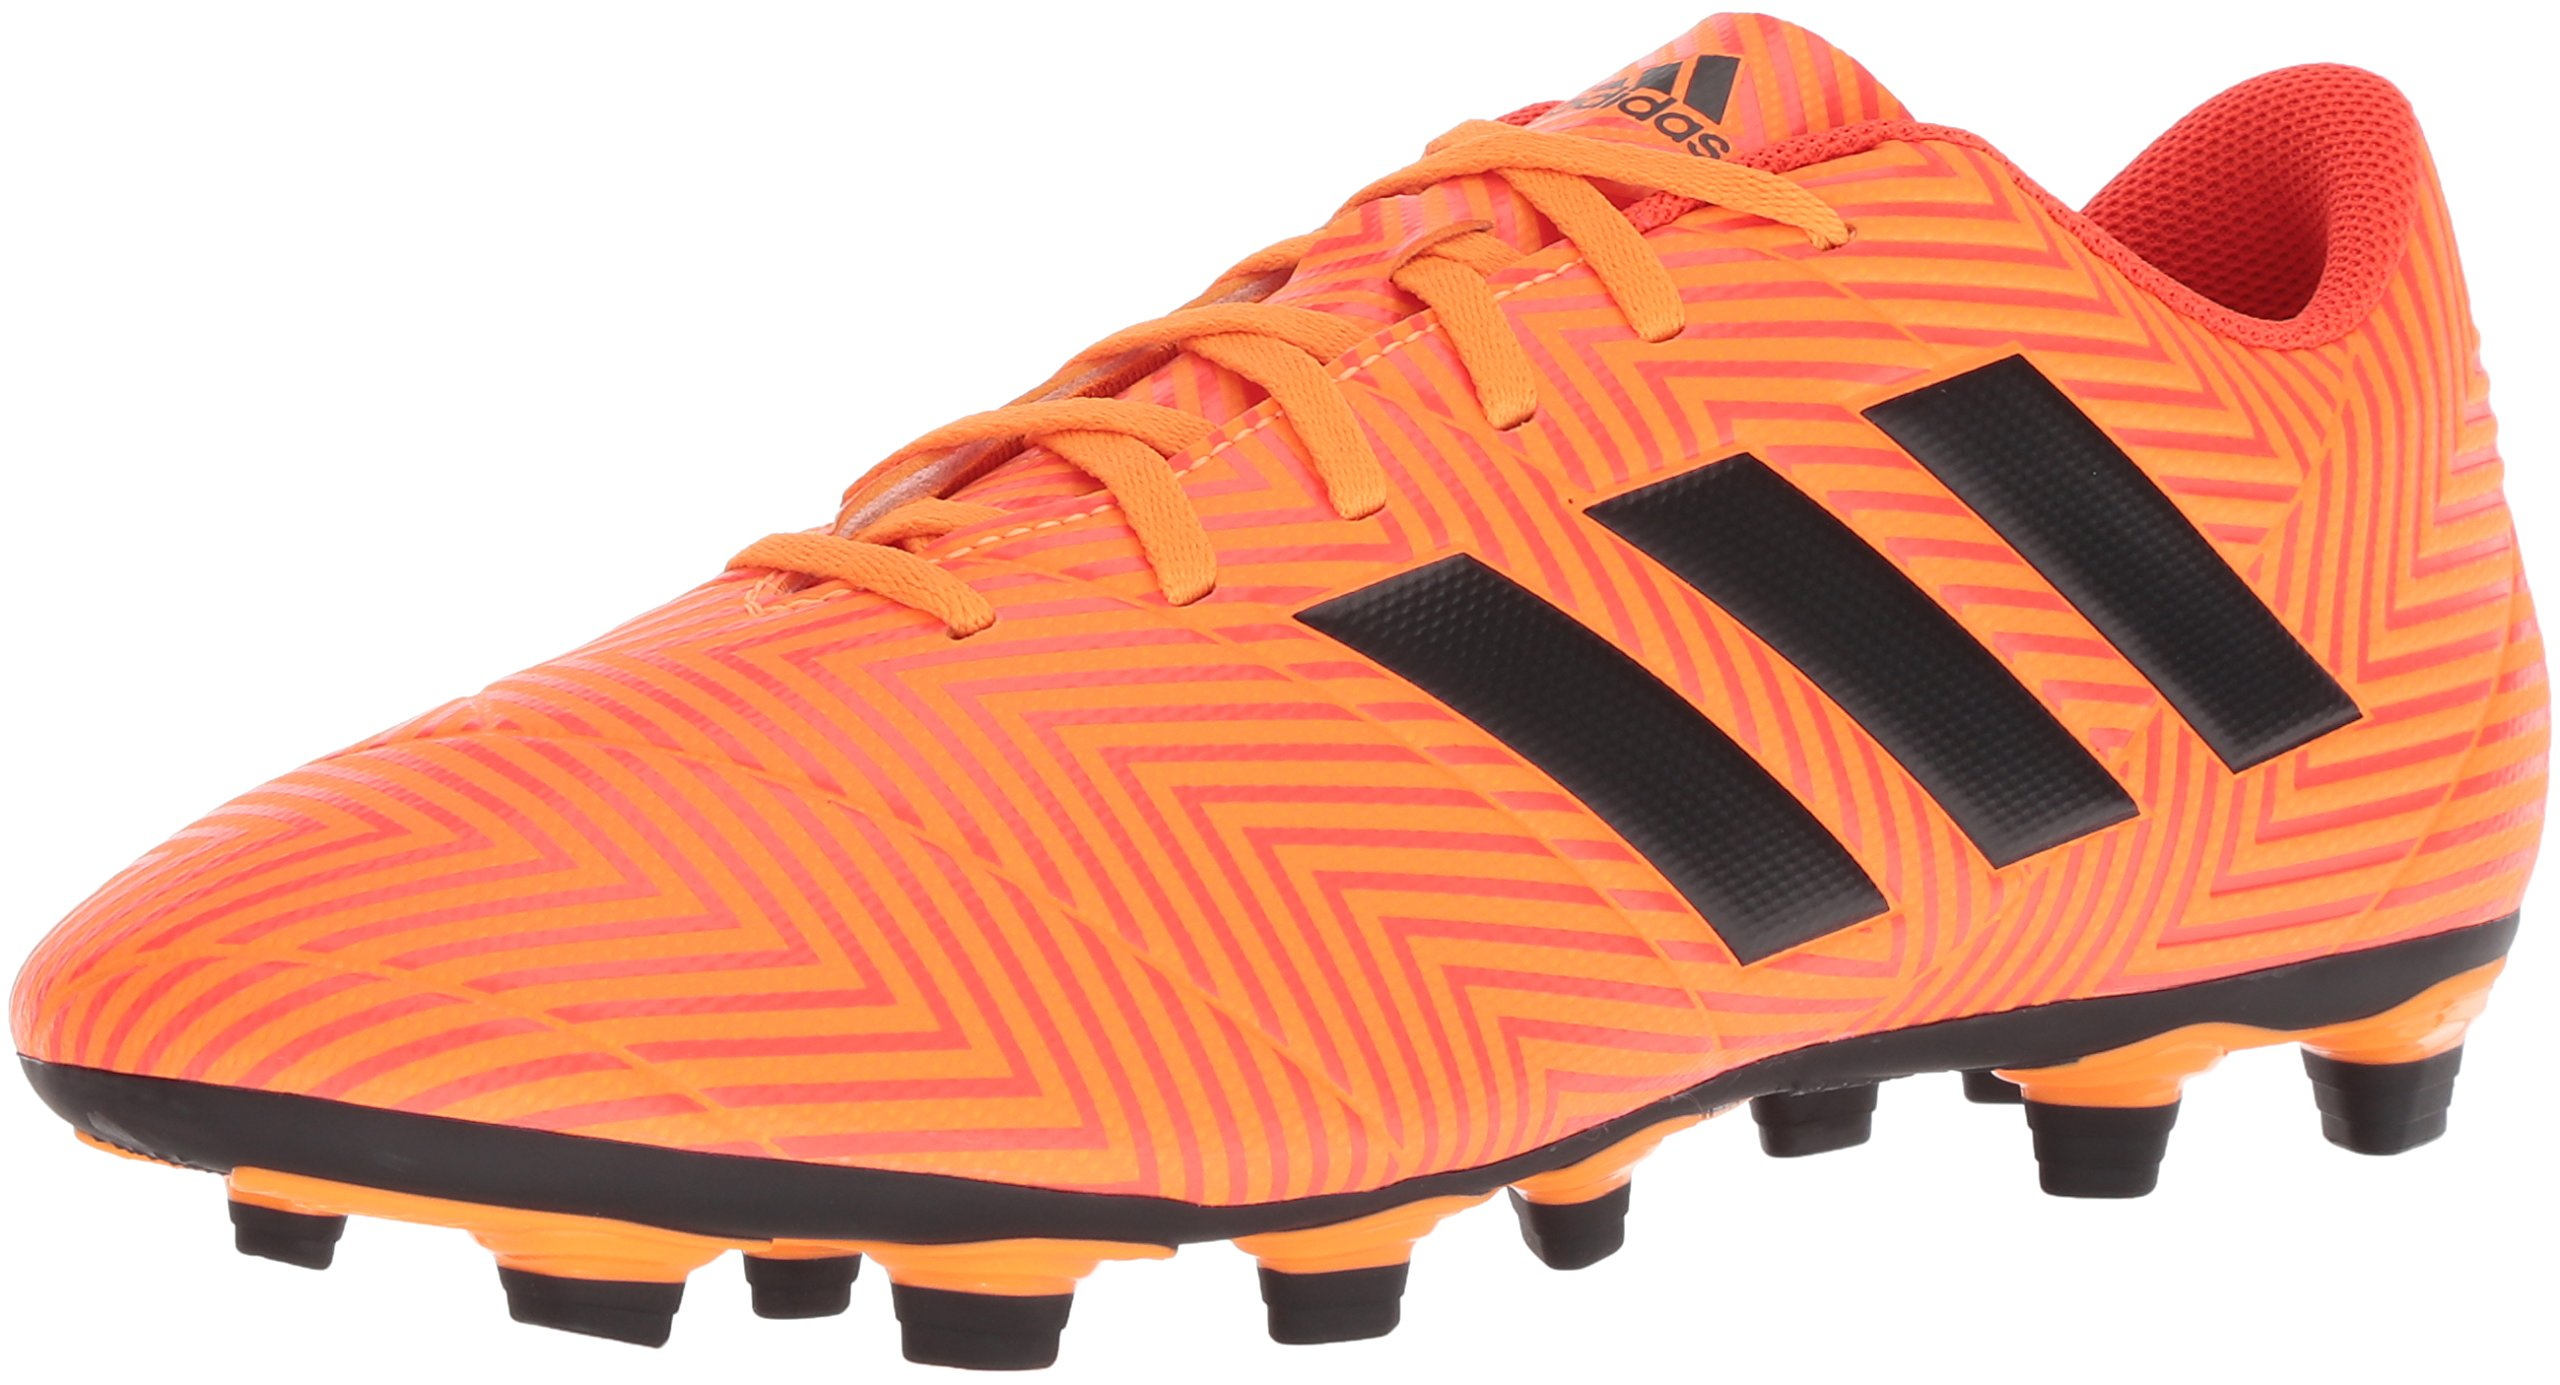 adidas Men's Nemeziz 18.4 Firm Ground Soccer Shoe, Zest/Black/Solar Red, 9 M US